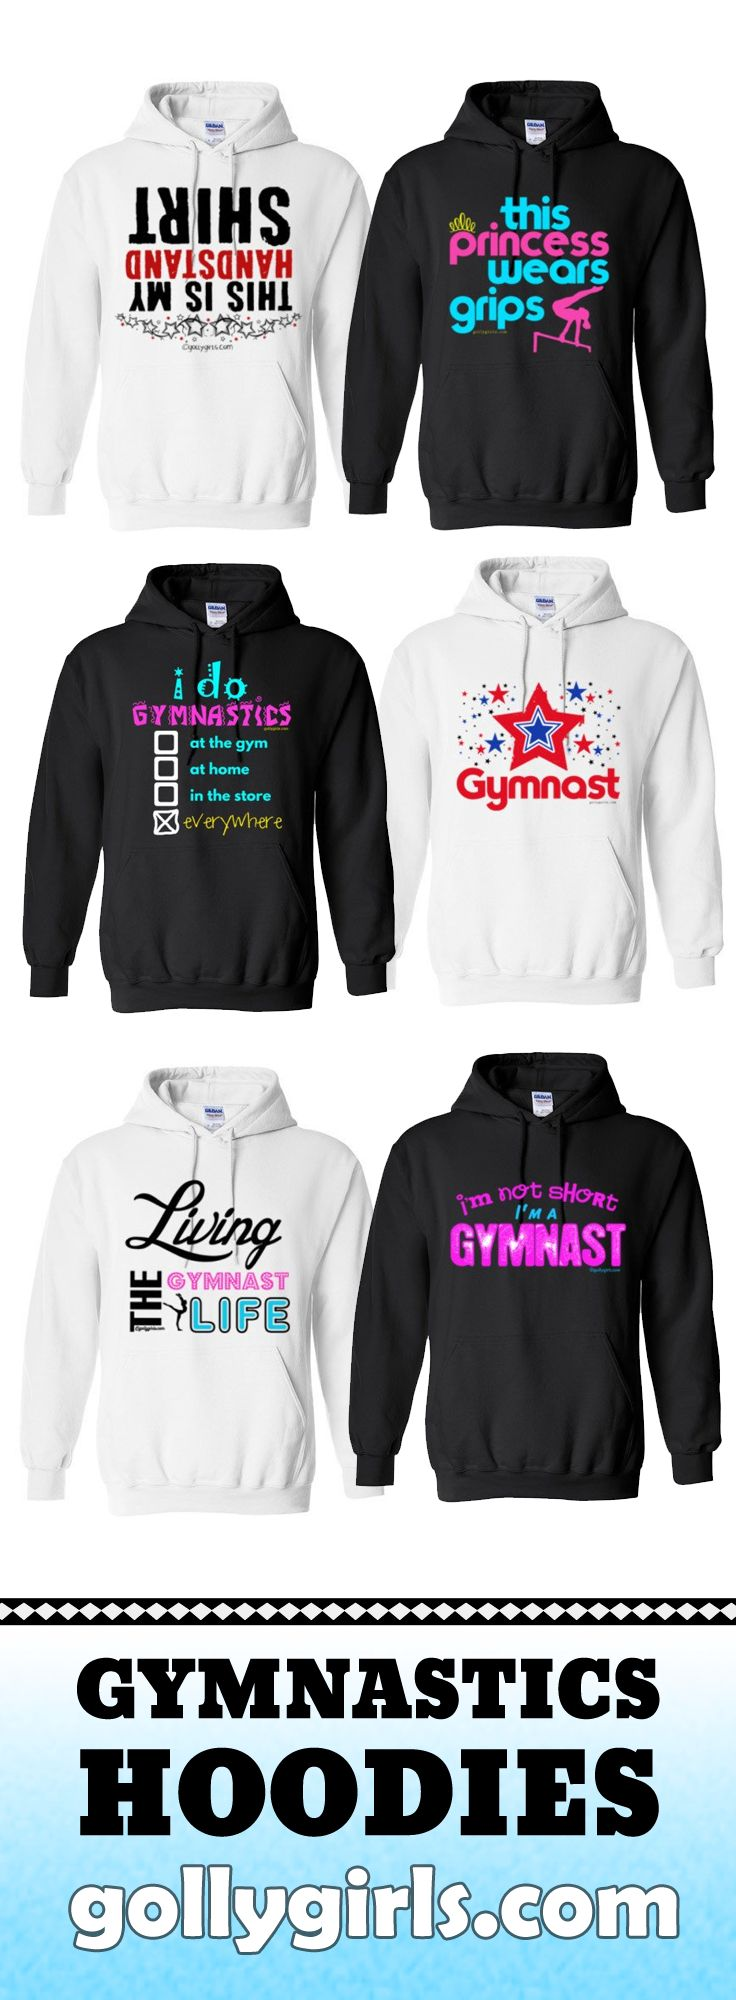 Get warmed up in these awesome gymnastics hoodies EXCLUSIVELY from gollygirls.com  Prices start at $24.99 and there are both youth & adult sizes!